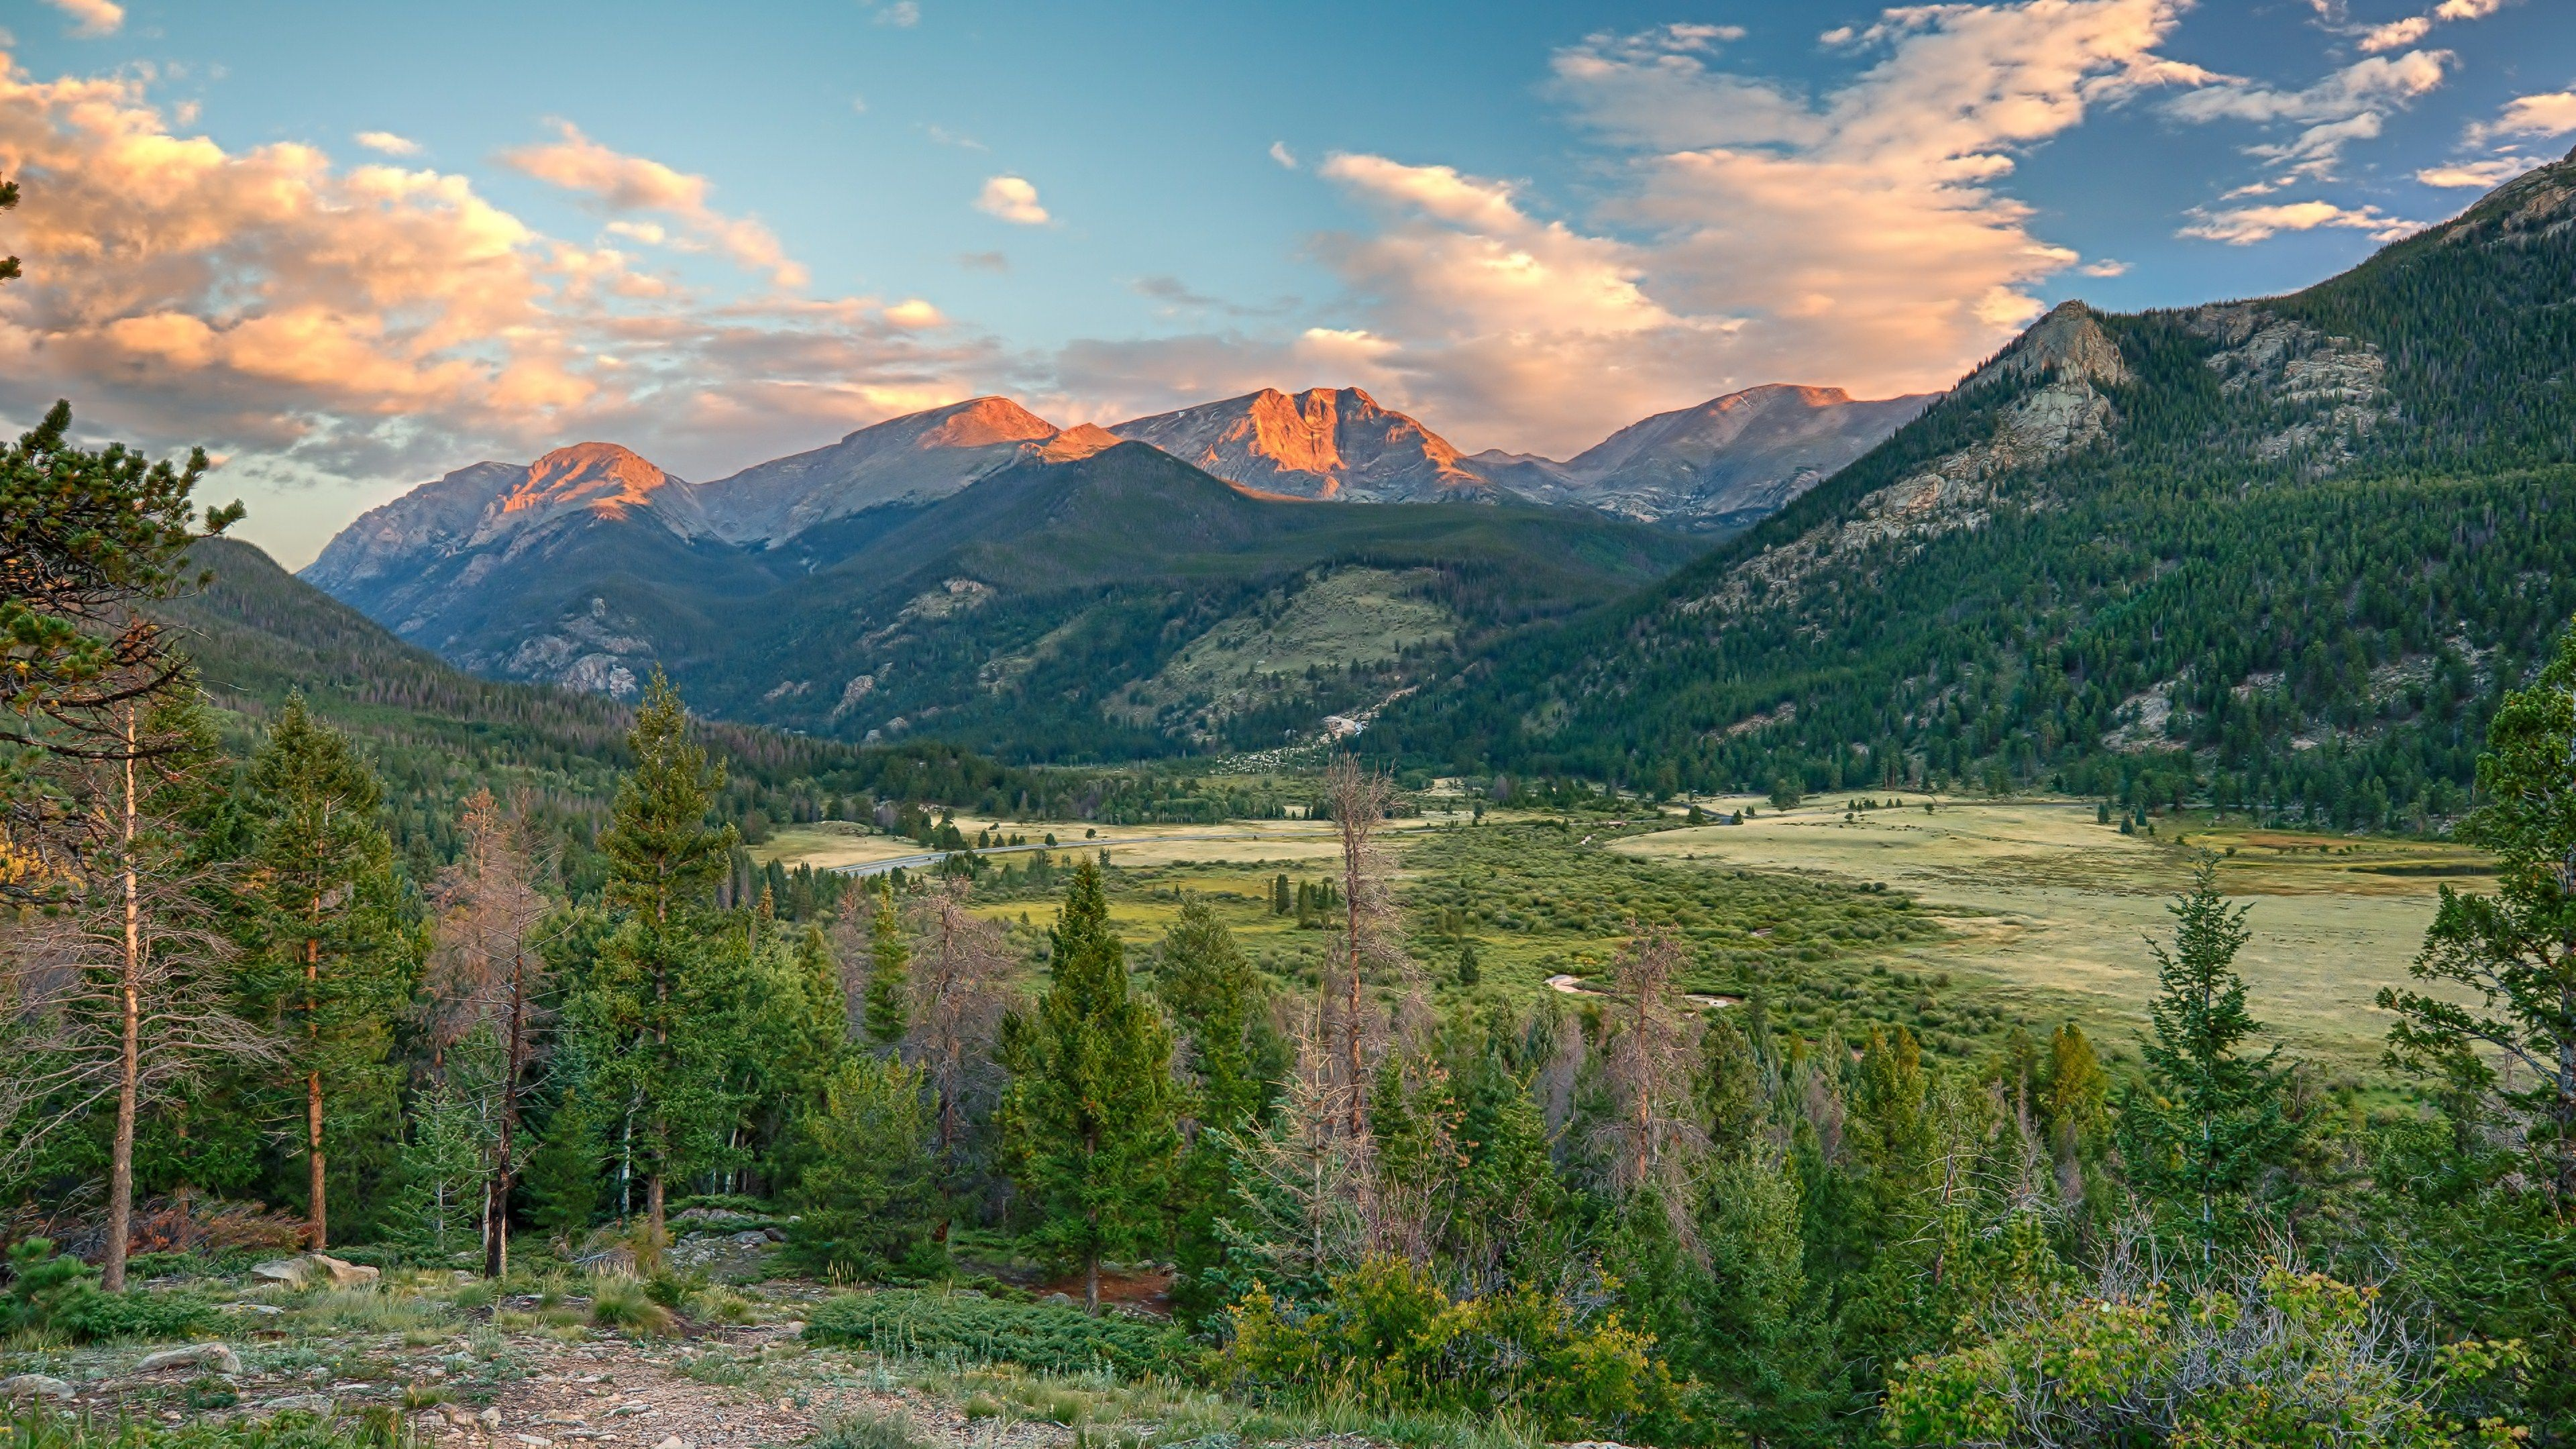 Pin By Jill On Fondos De Pantalla Pc In 2020 Landscape Wallpaper Sunrise Pictures Rocky Mountain National Park